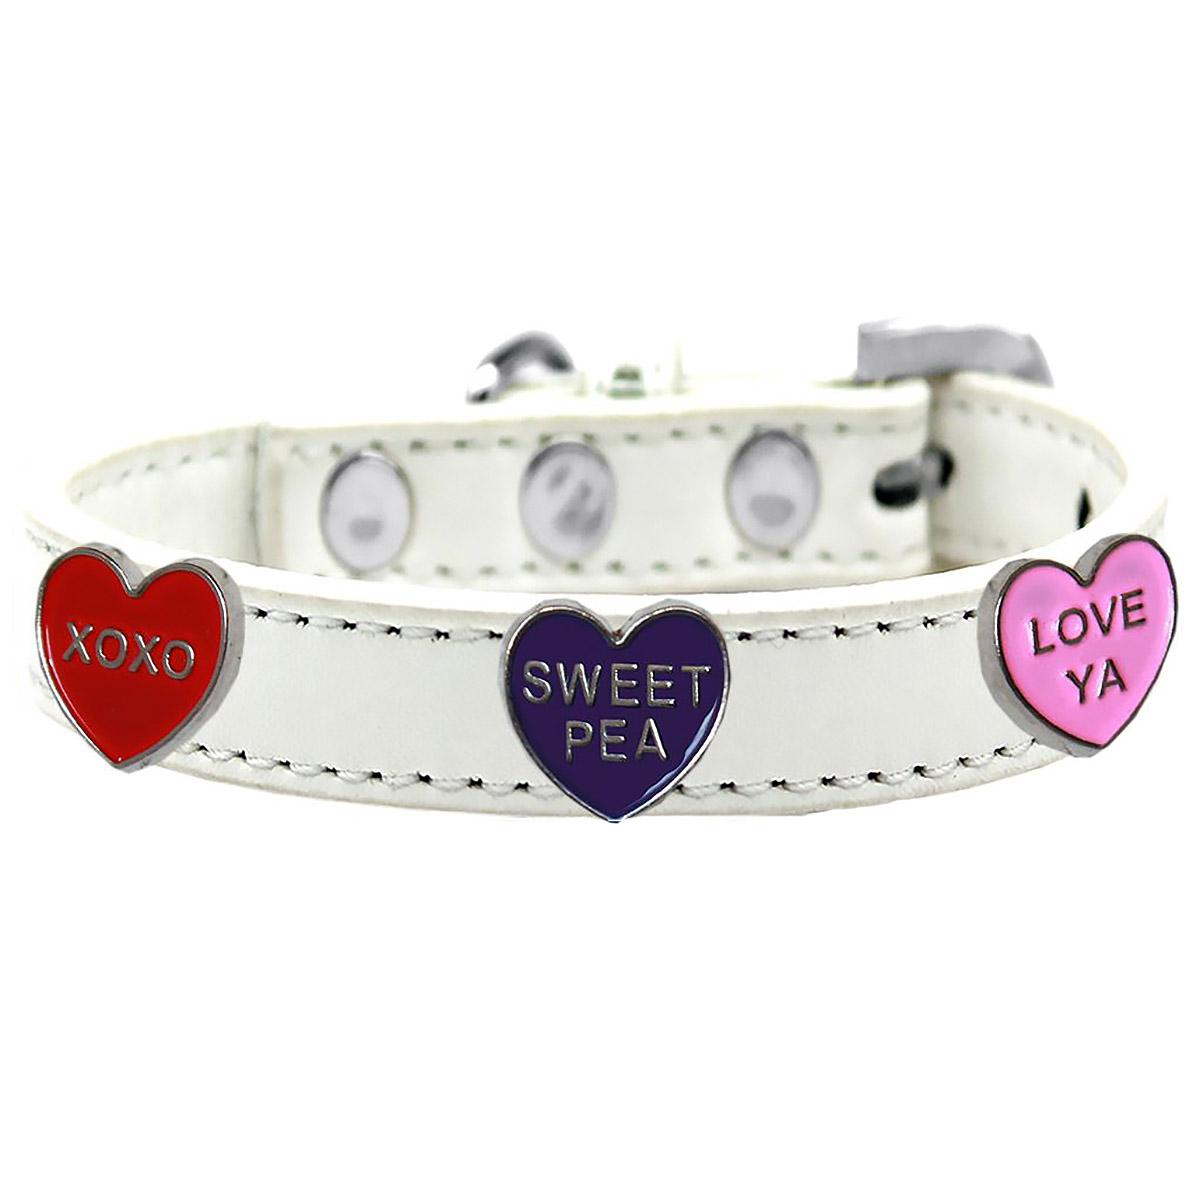 Conversation Hearts Widget Dog Collar - White